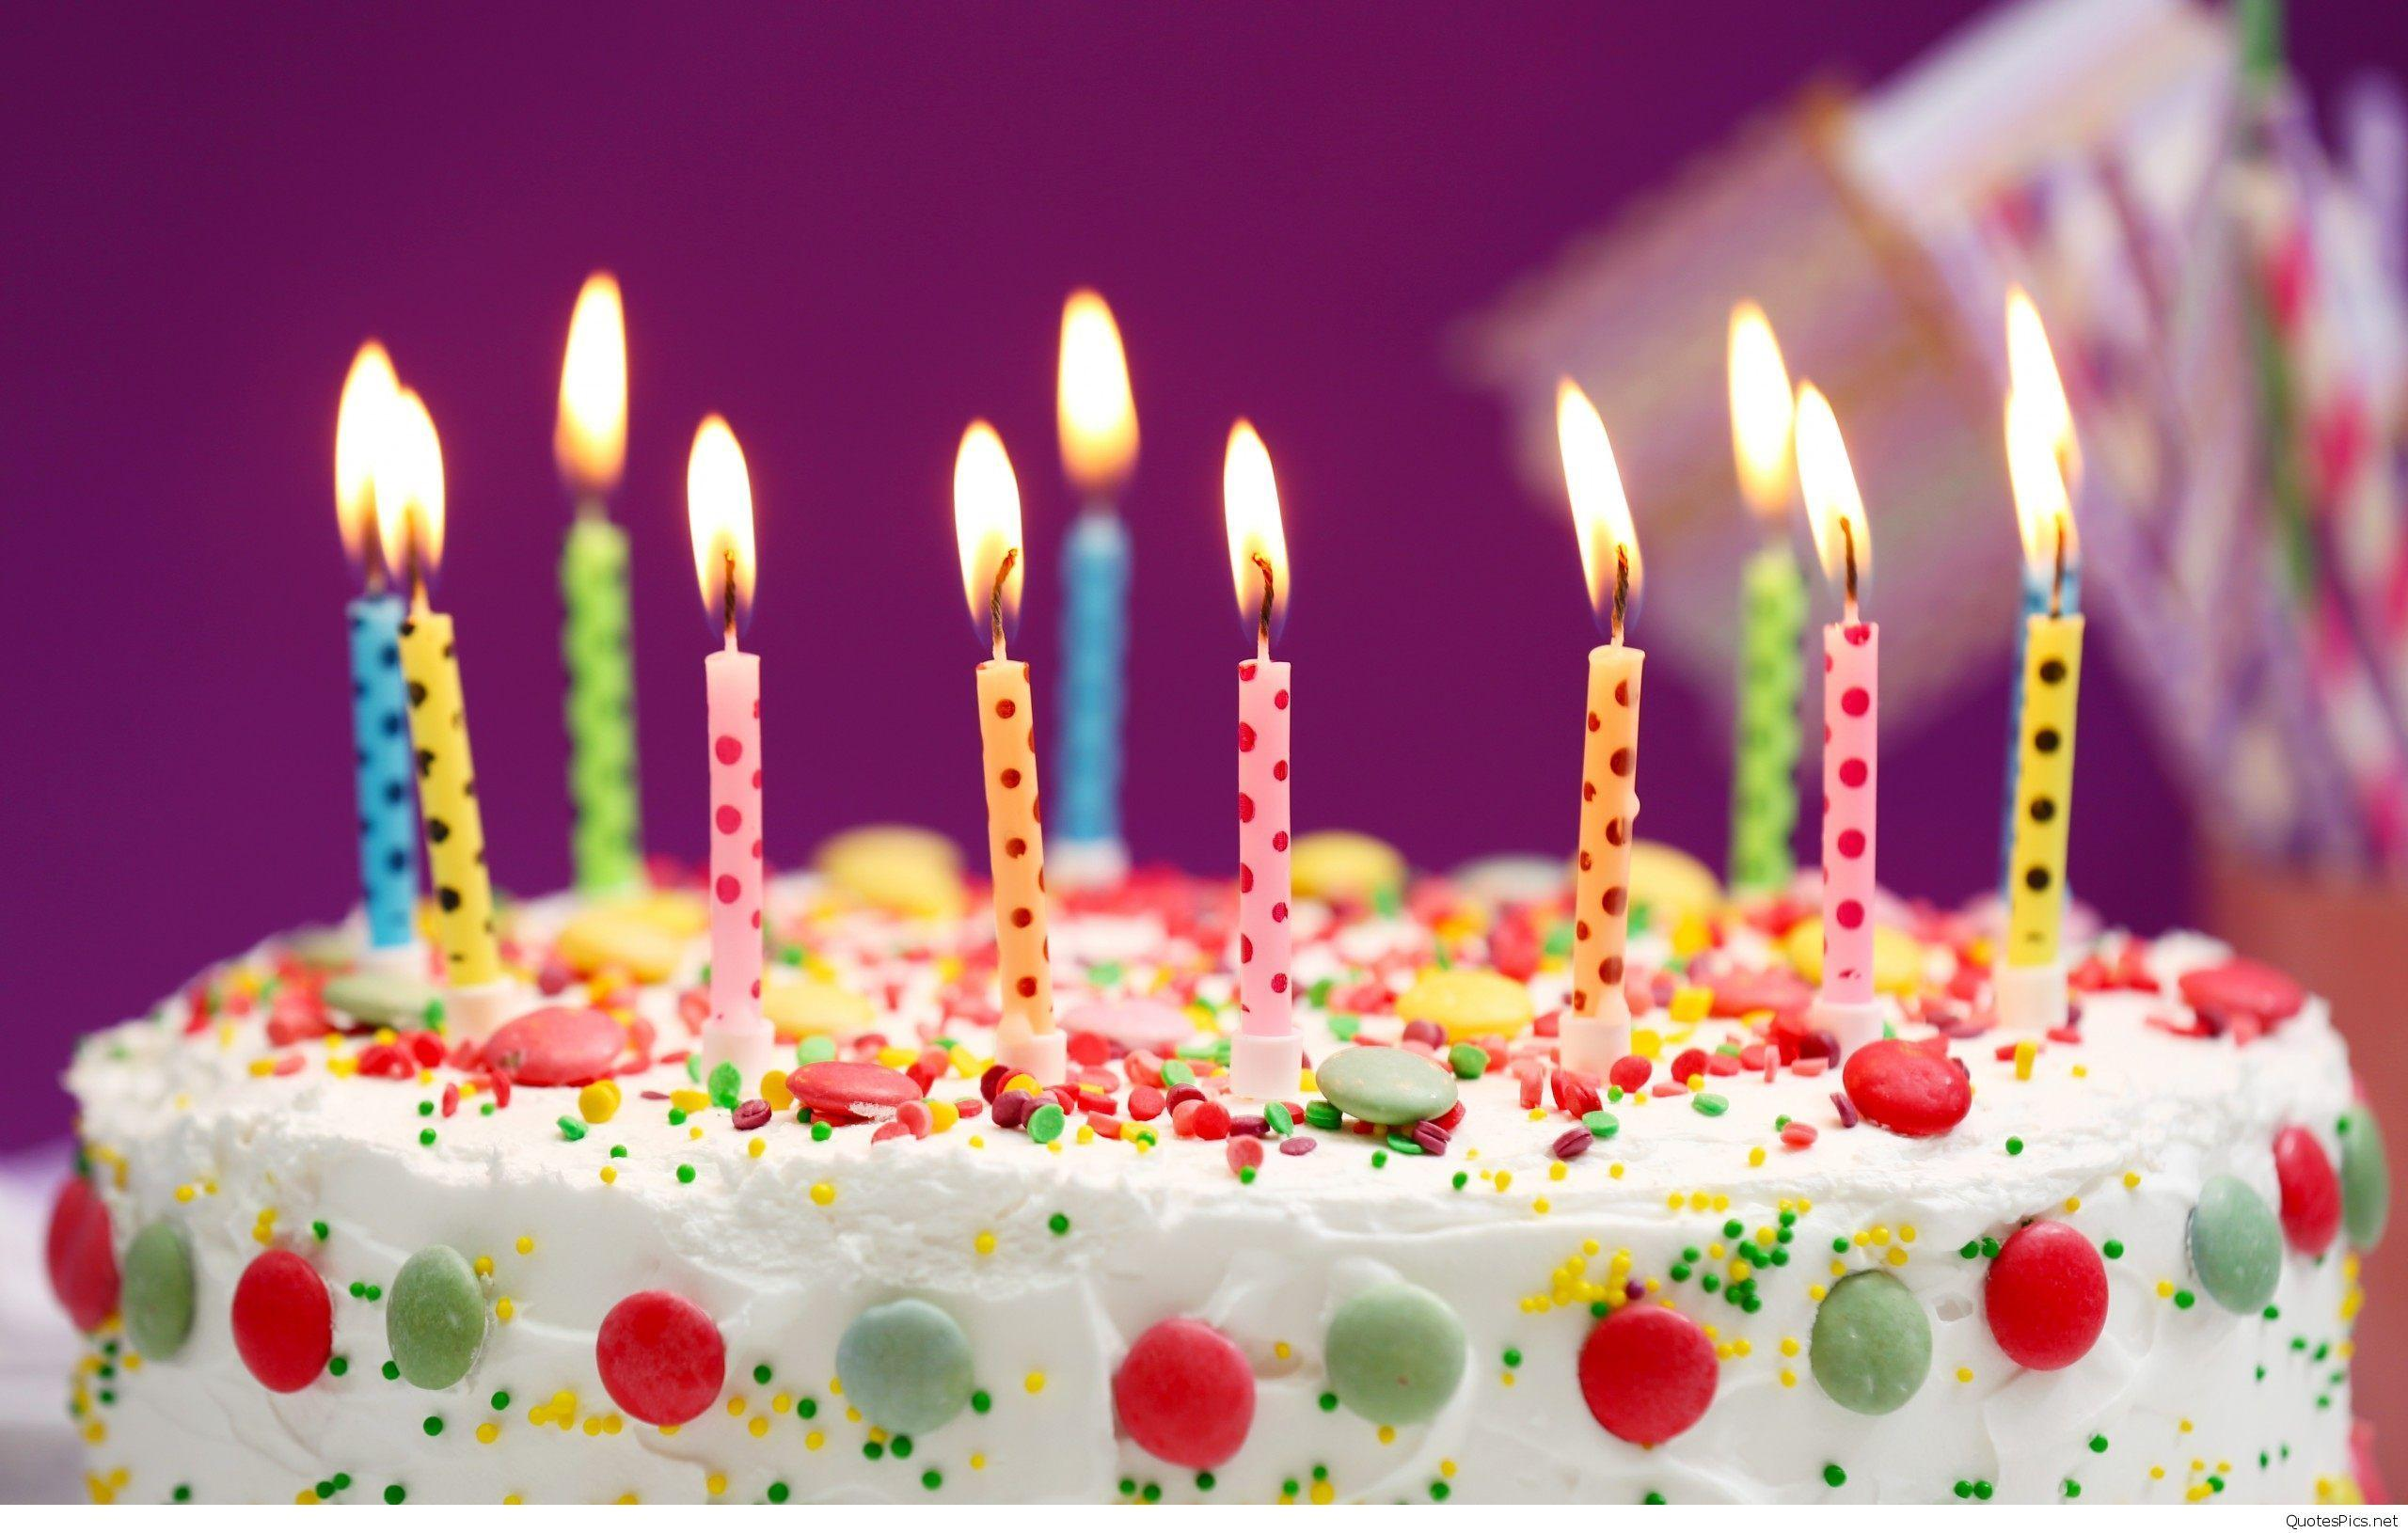 birthday cake wallpaper hd ; wp2020157